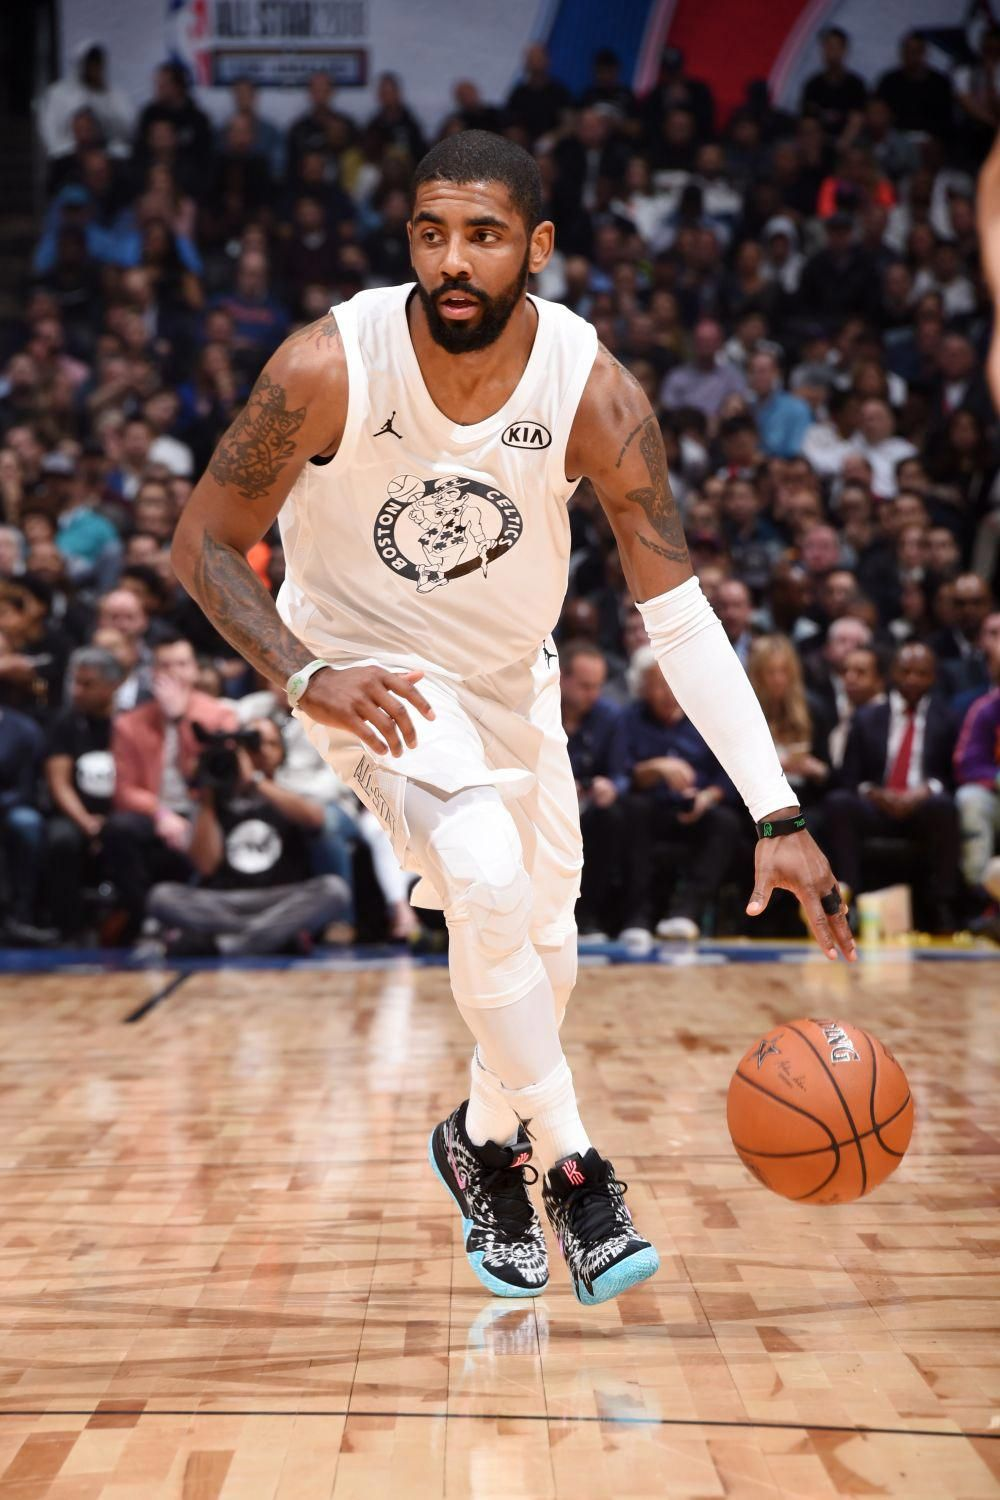 Kyrie Irving debuts new Nike Kyrie 4 'All Star' sneaker